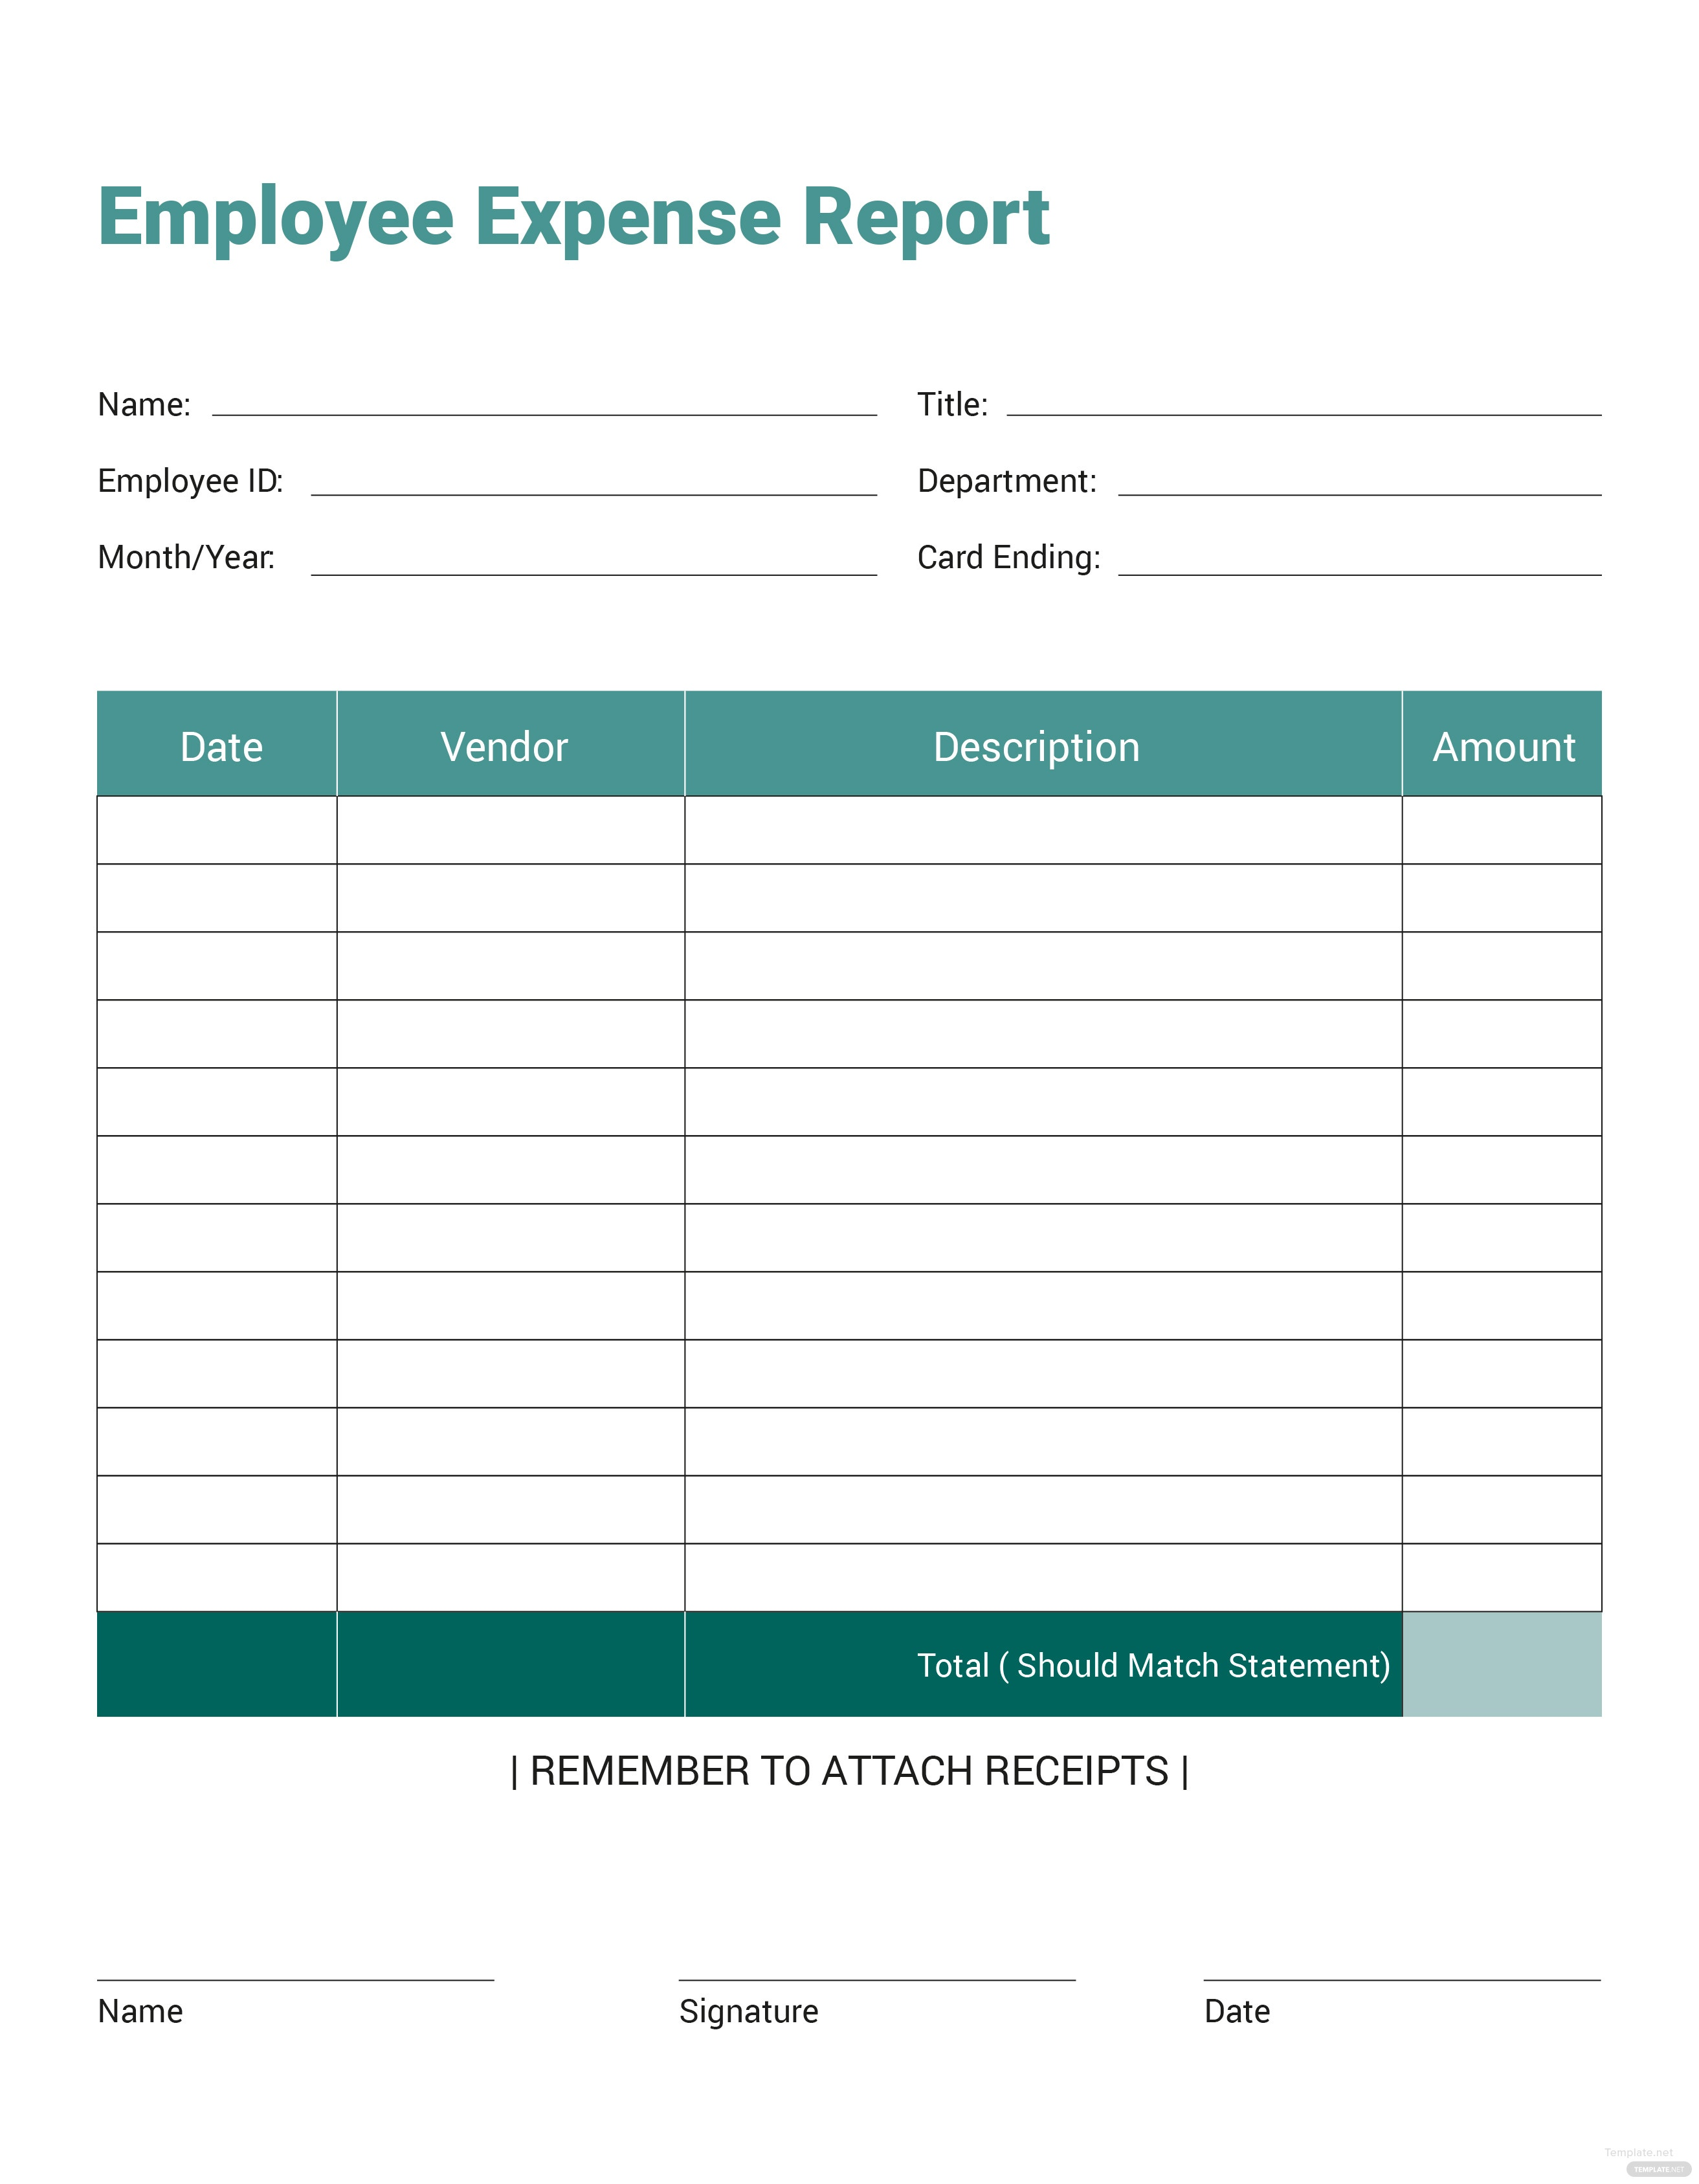 Free Employee Expense Report Template In Microsoft Word